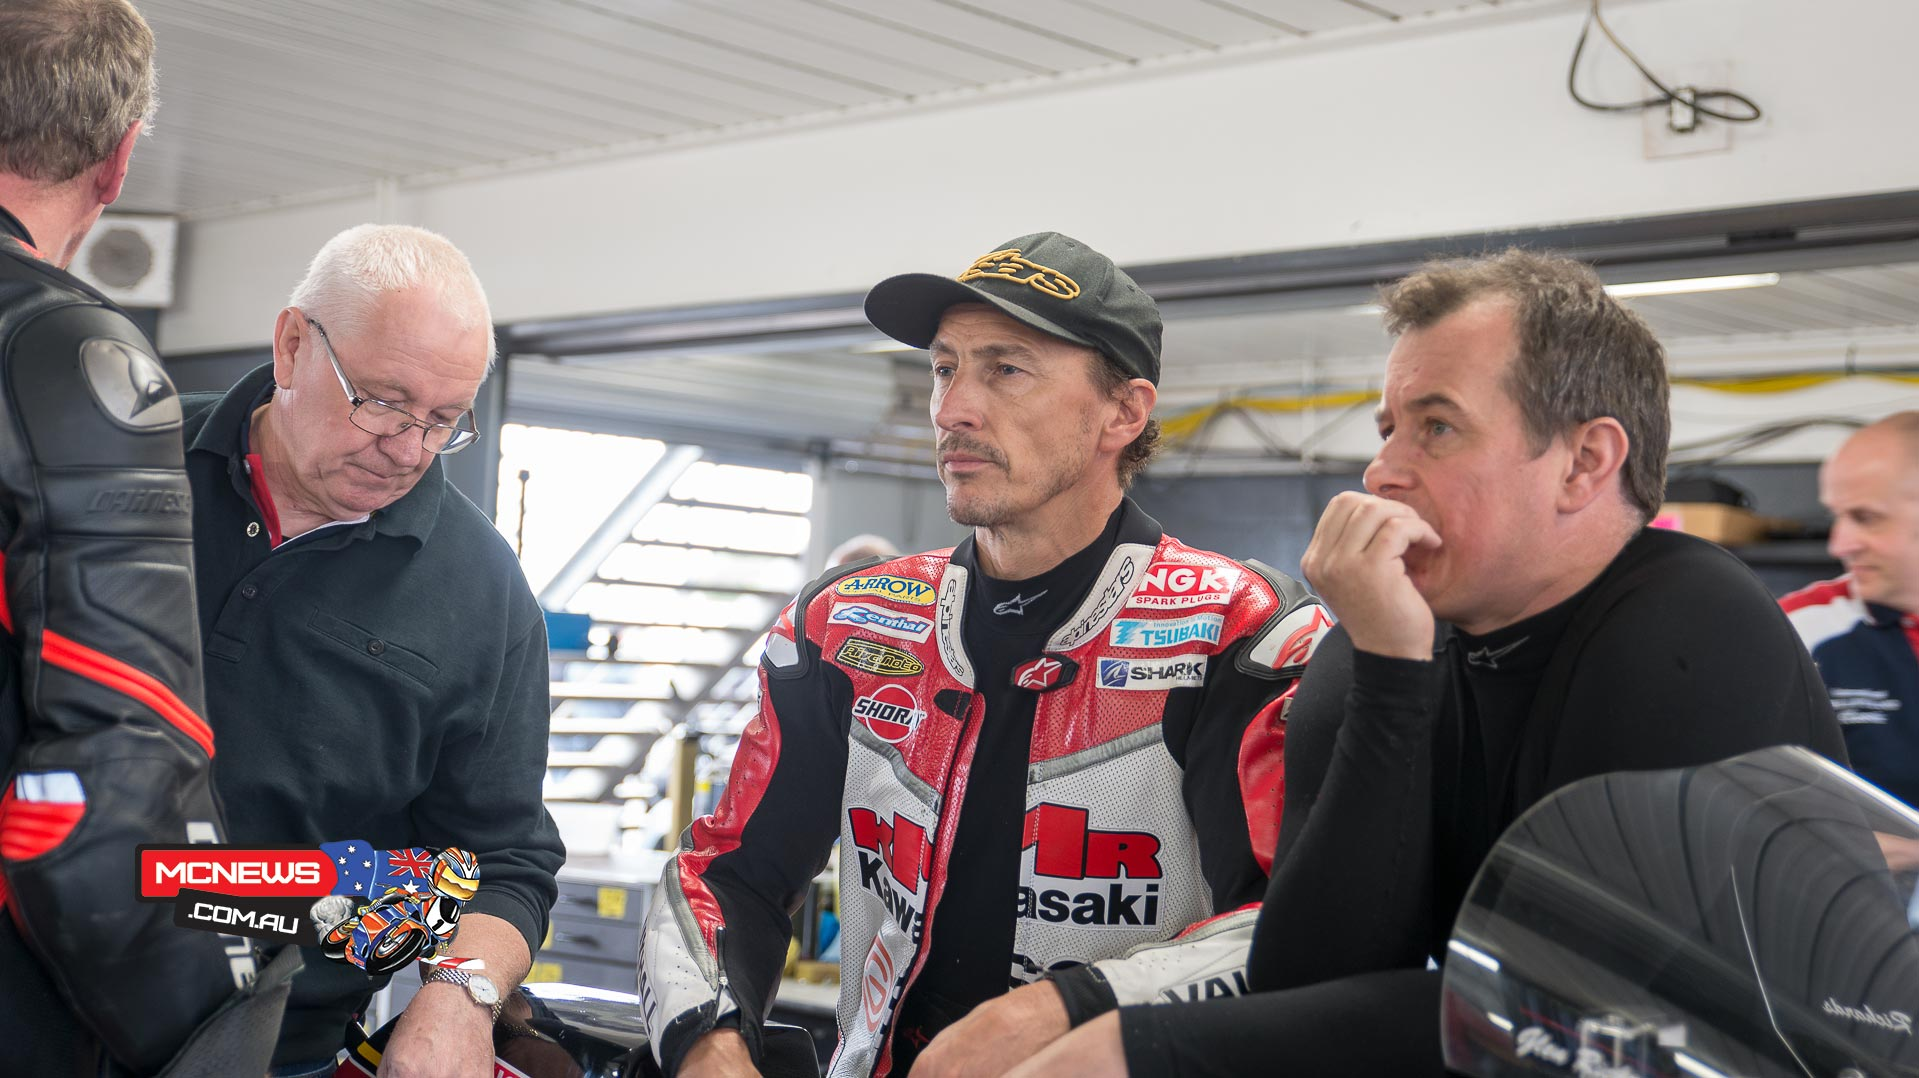 Island Classic 2016 - Qualifying - Roger Winfield, Jeremy McWilliams and John McGuinness